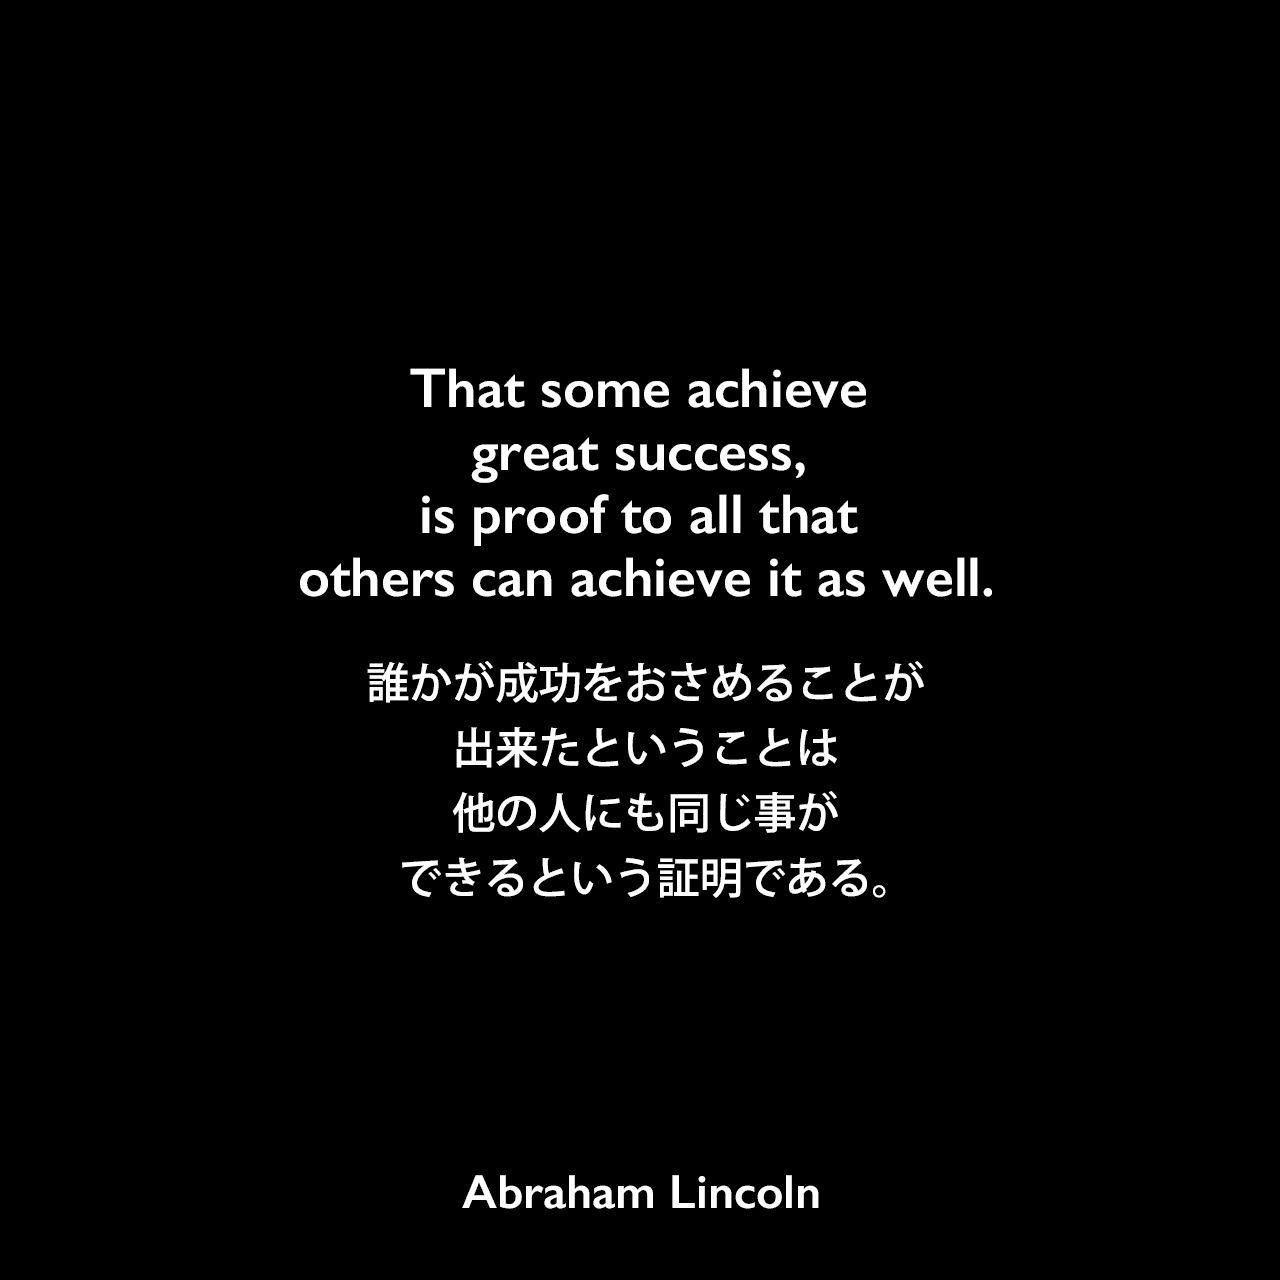 That some achieve great success, is proof to all that others can achieve it as well.誰かが成功をおさめることが出来たということは、他の人にも同じ事ができるという証明である。